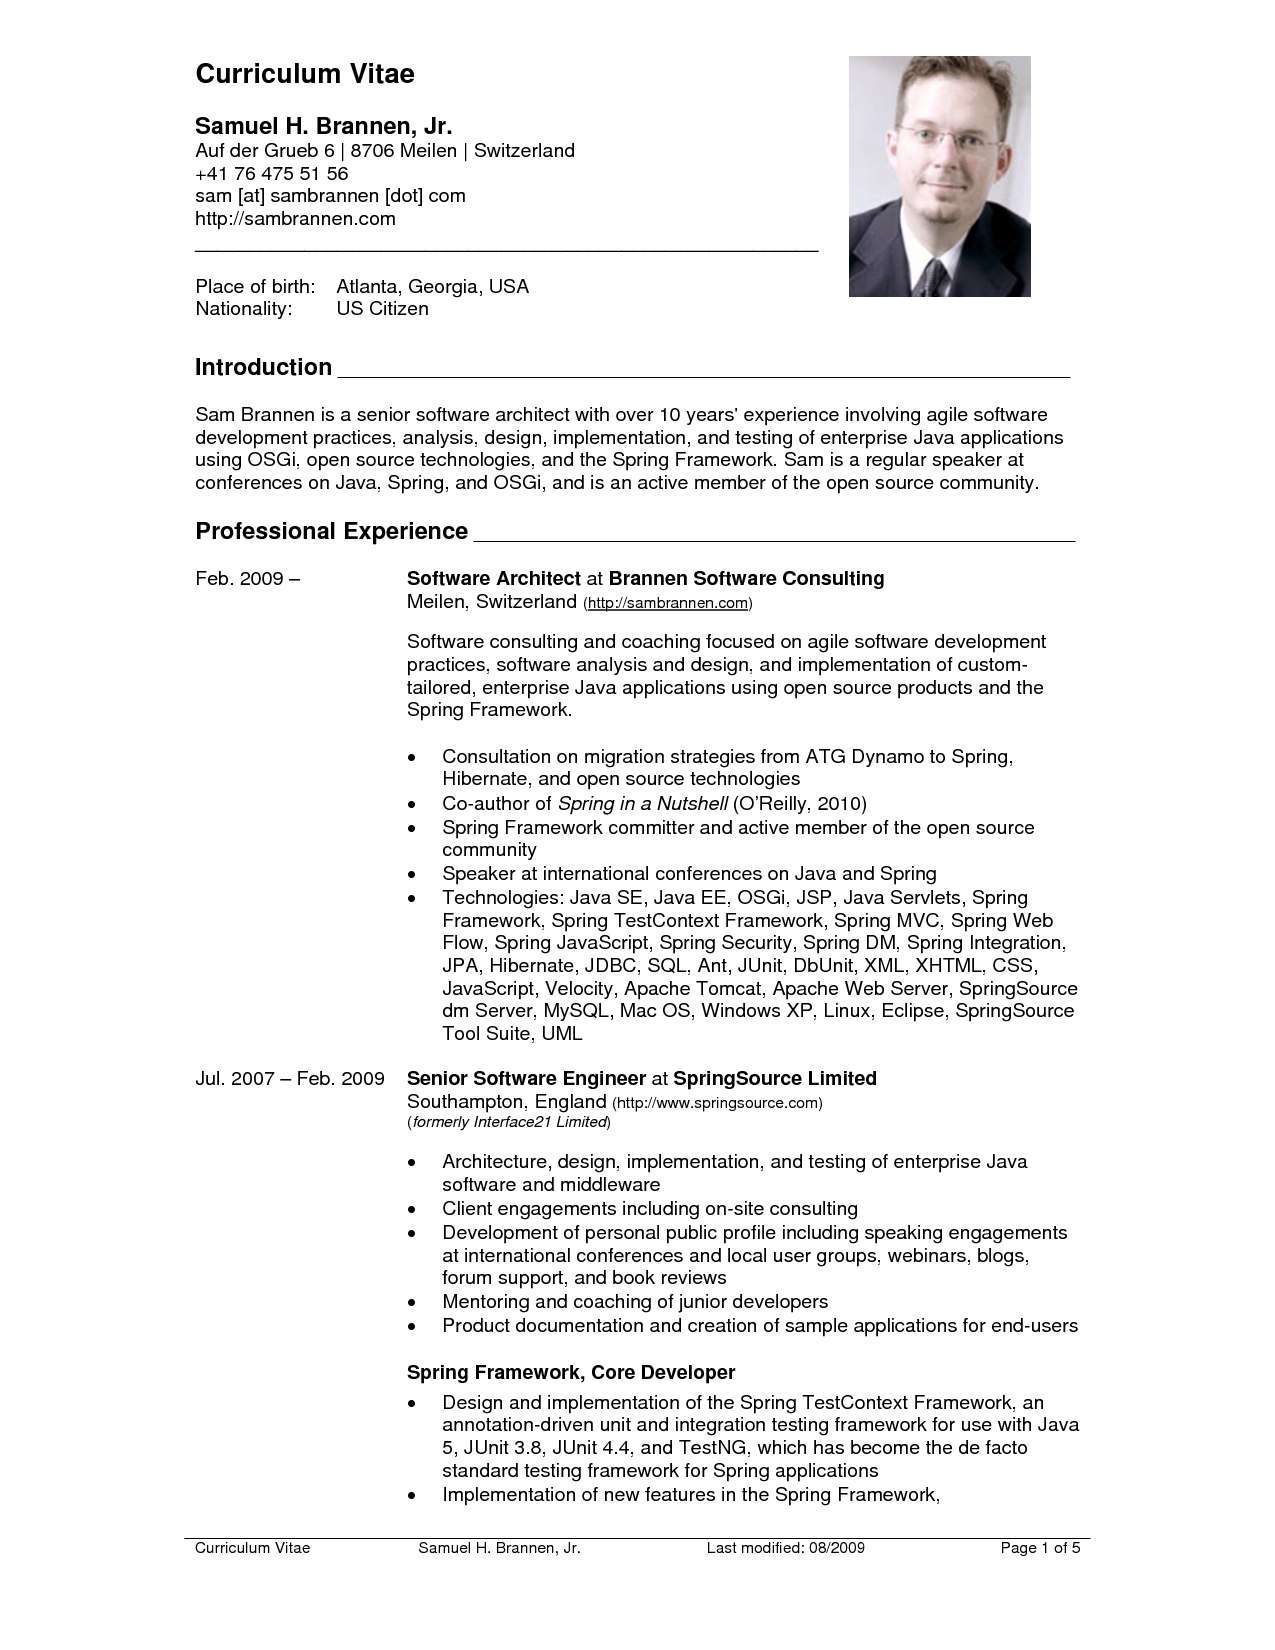 Sample Of C V Or Resume